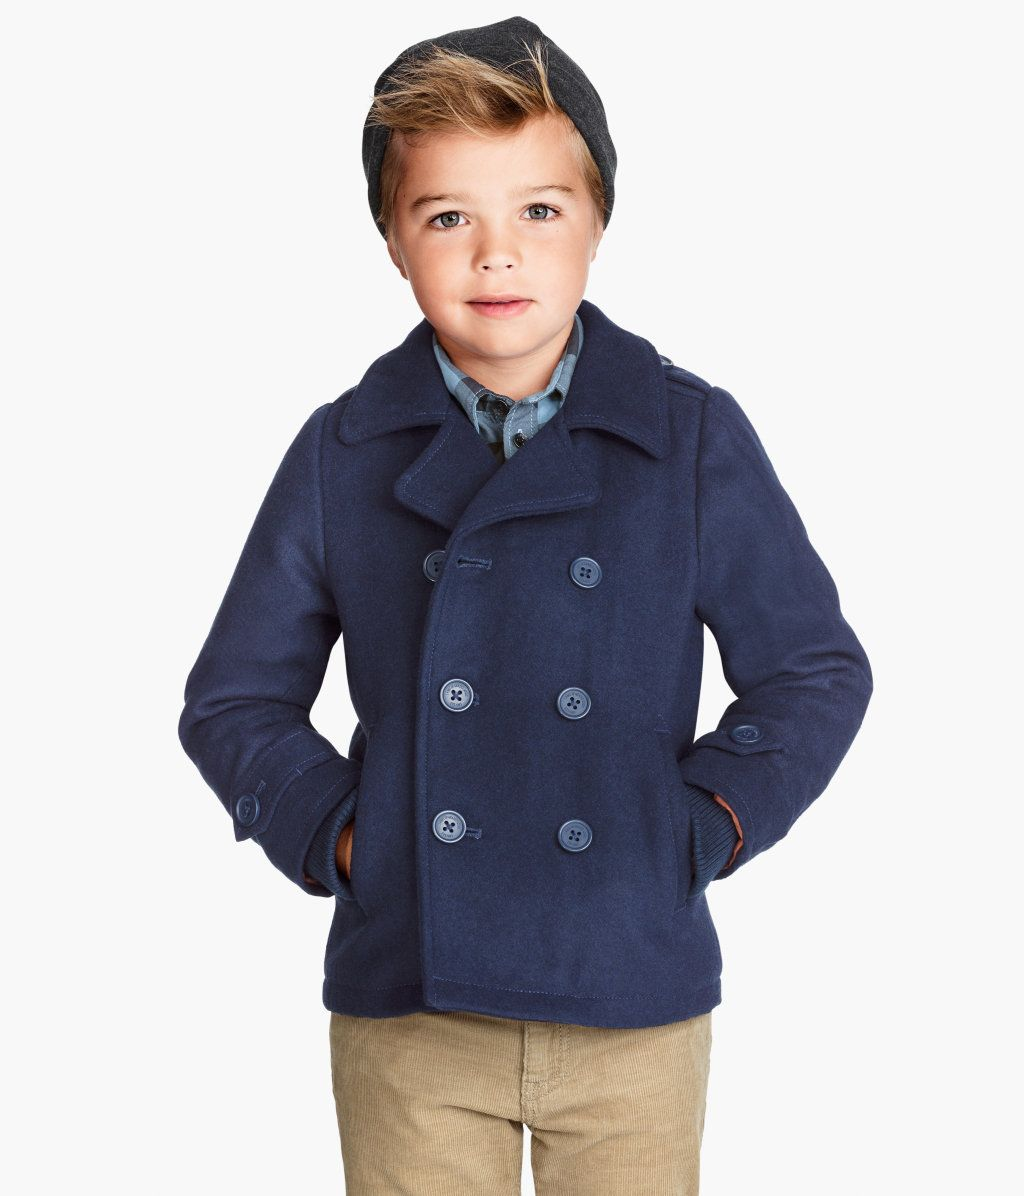 dd7d6c985 Pea Coat with Flannel Shirt